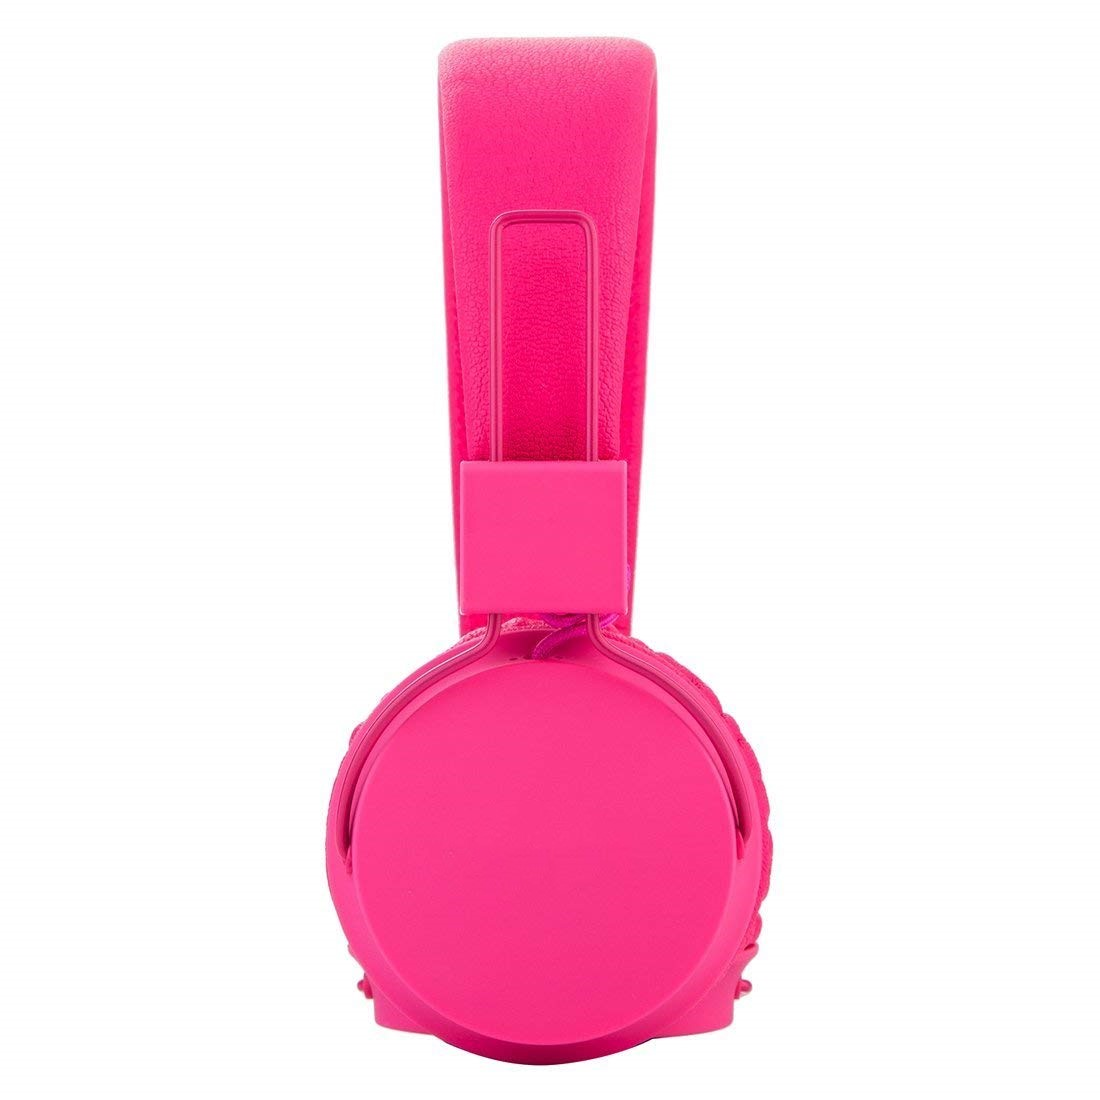 dj studio headphones